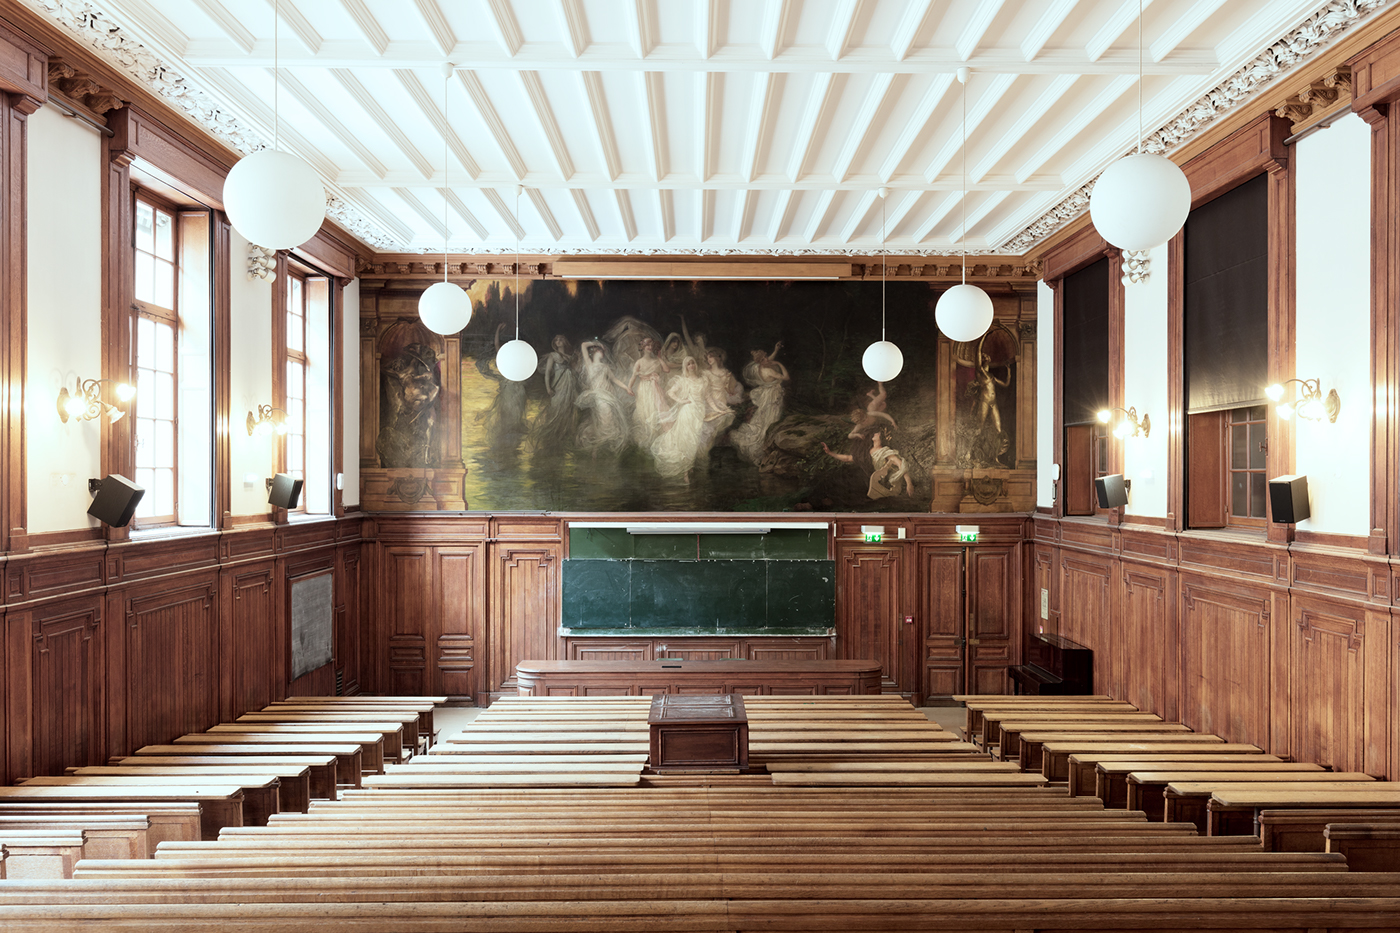 La sorbonne paris on behance for Sorbonne paris